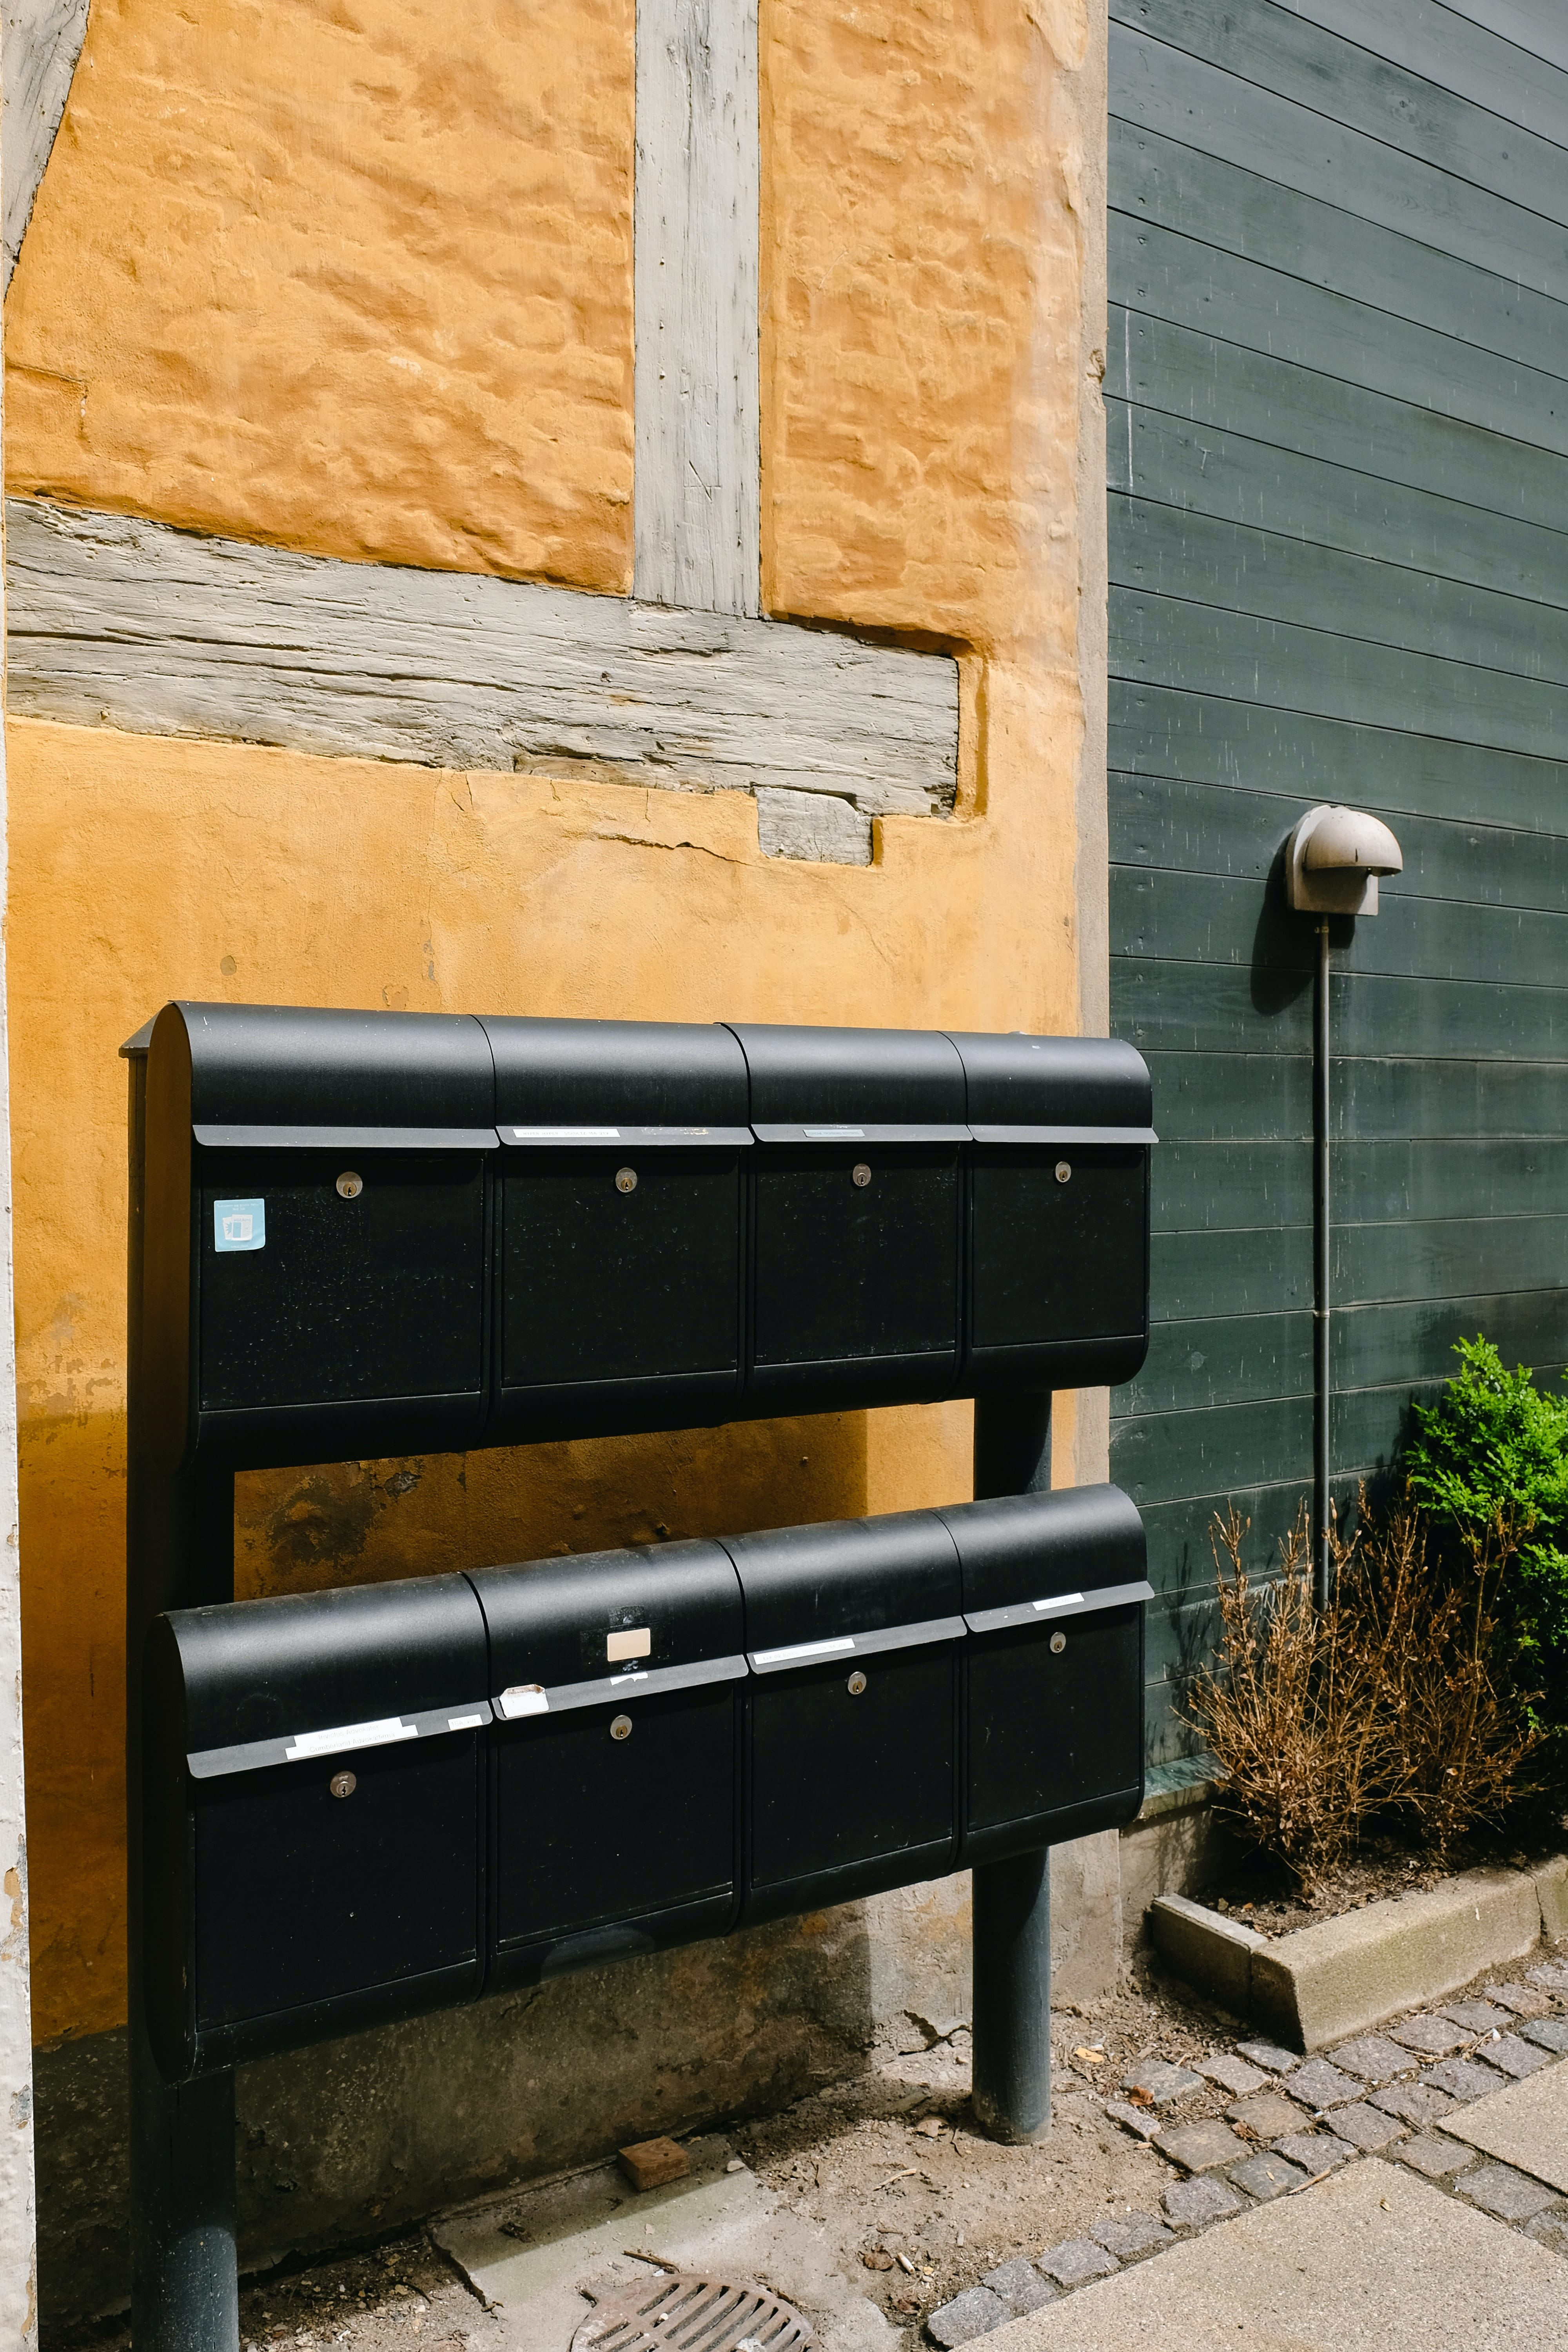 Locking Residential Mailboxes Prevent Mail Theft & Fraud